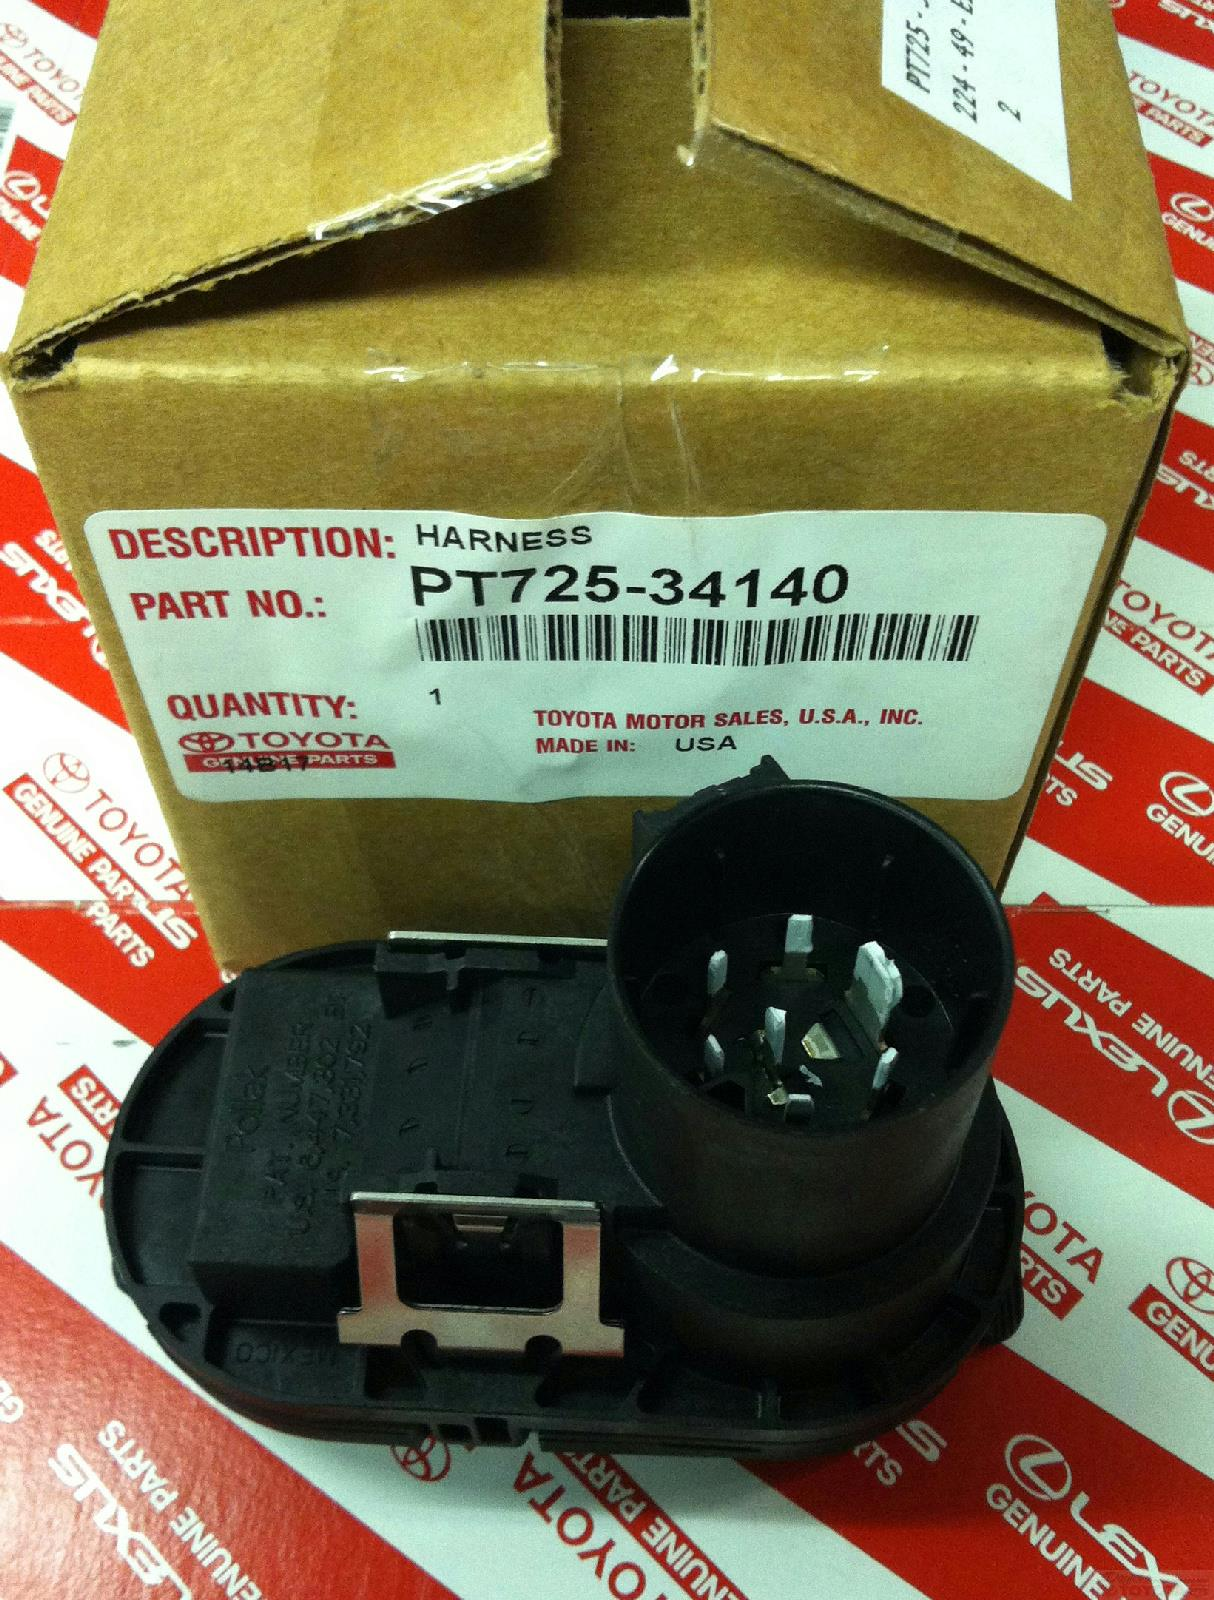 2014 Tundra Trailer Harness Manual Guide Wiring Diagram Toyota 7 Pin 2015 And 4 Connector Pt725 34140 Rh Ebay Com